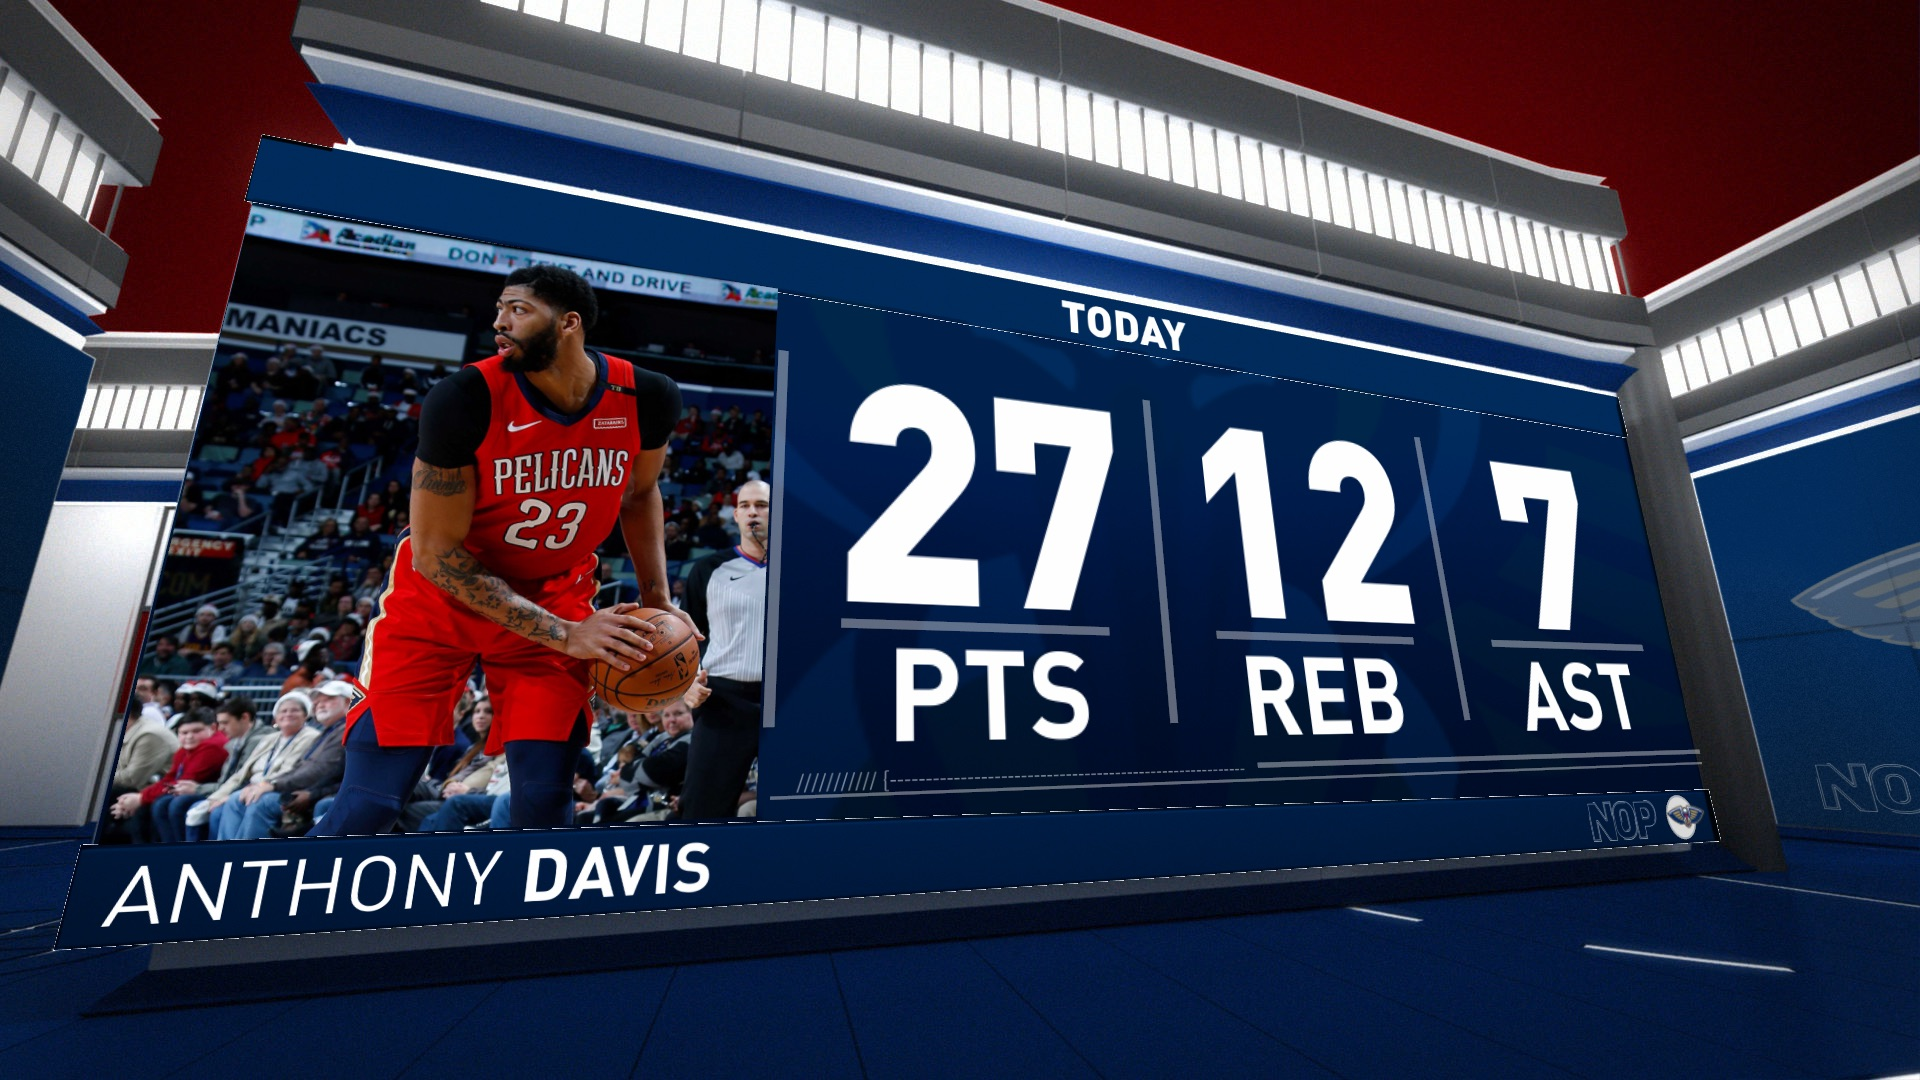 Stat Leader Highlights: Anthony Davis tallies 27 points vs. Miami Heat